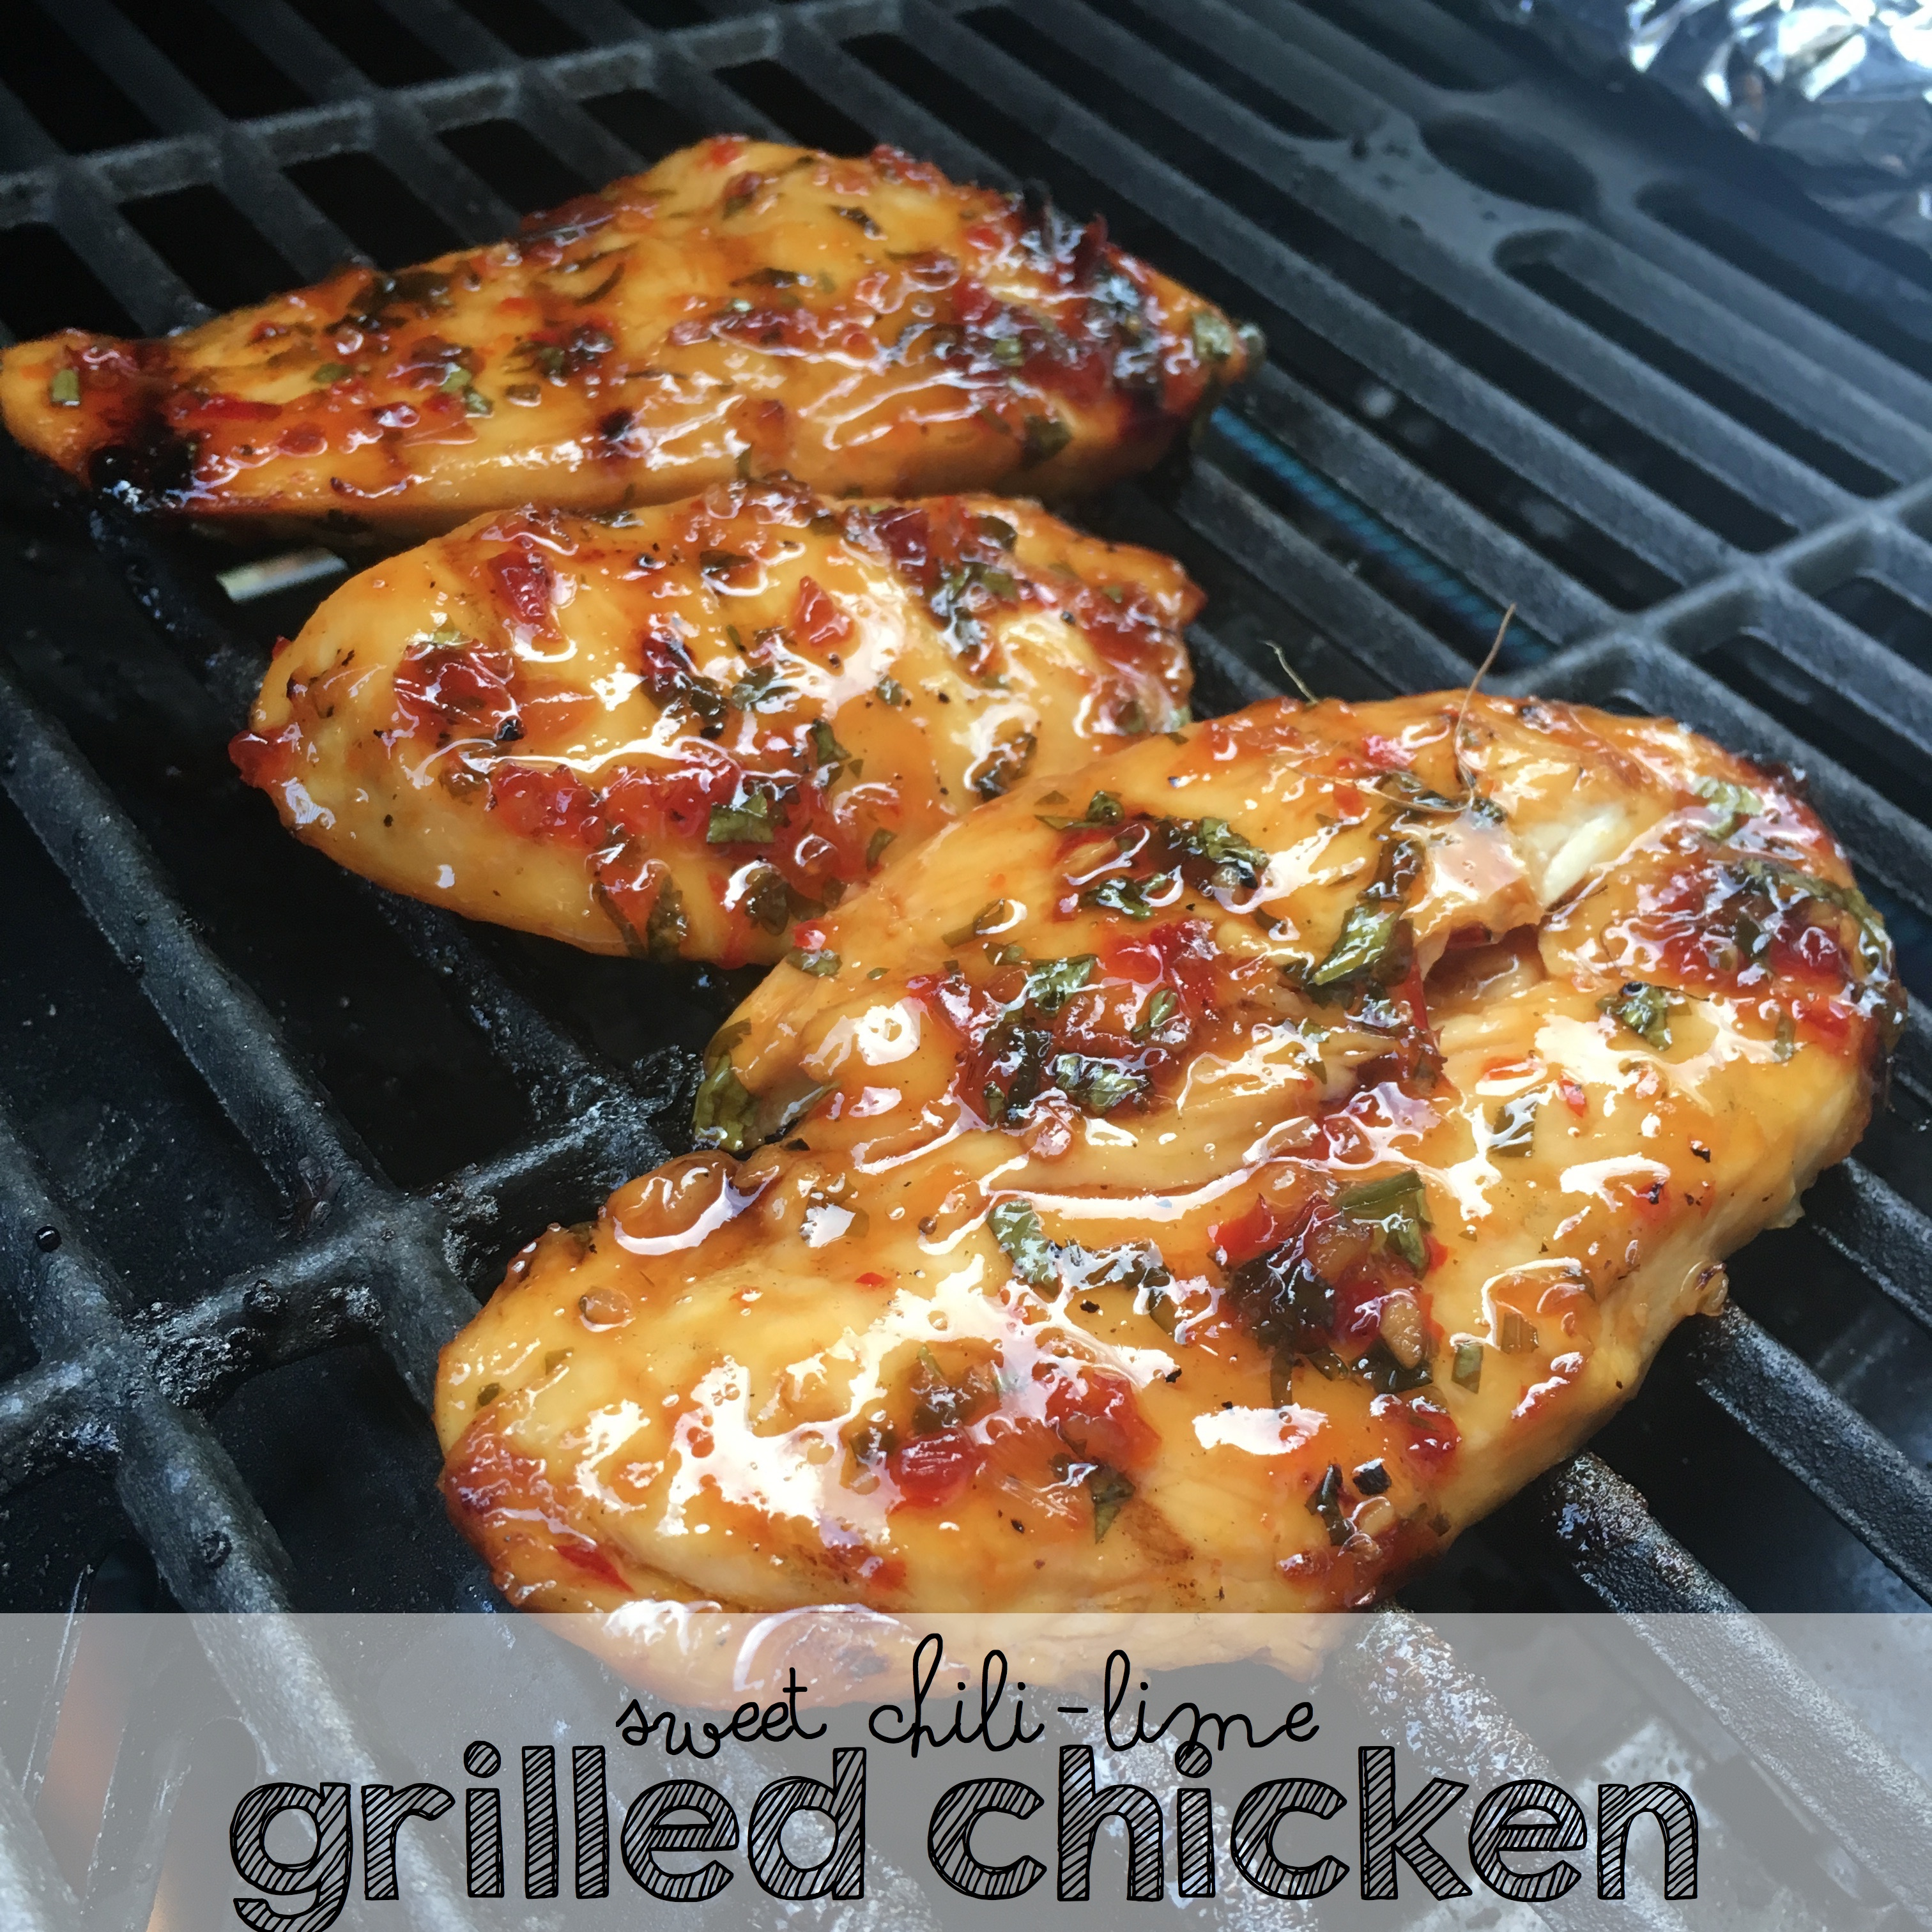 This Grilled Sweet Chili Lime Chicken Is One Of The Best Things You'll Make This Summer!